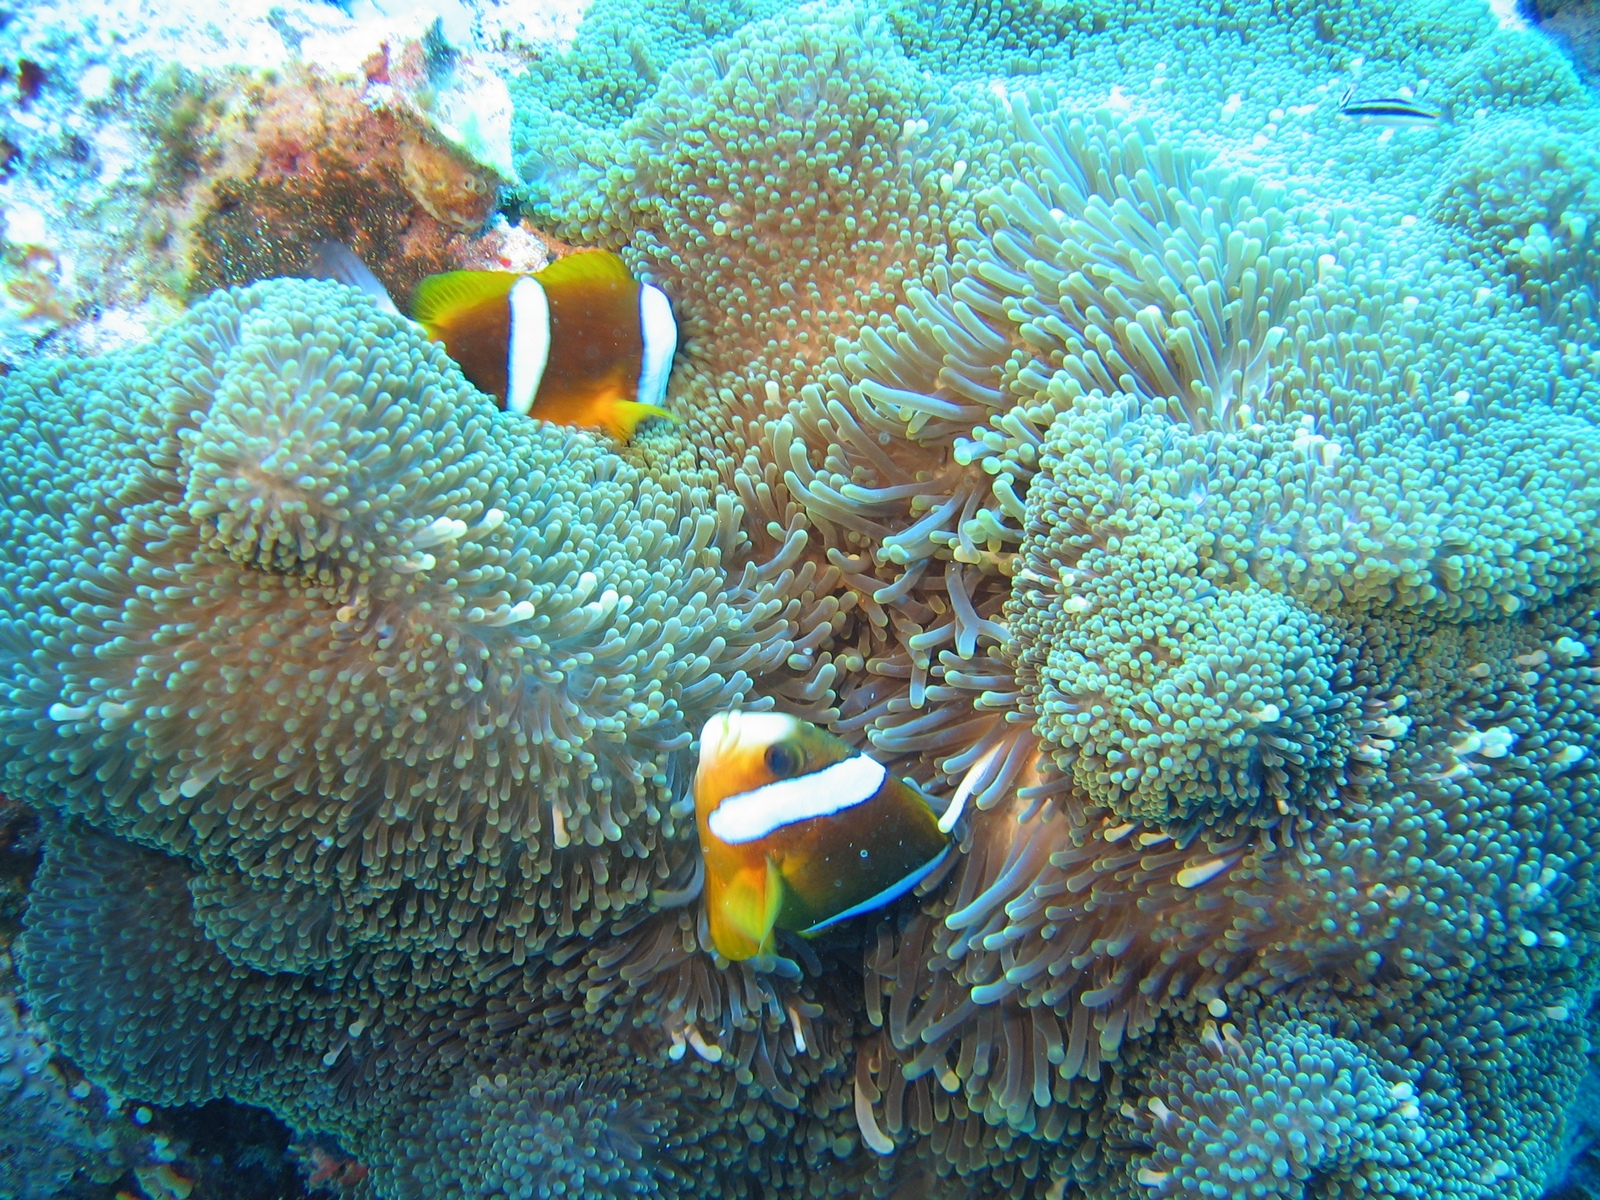 Agincourt Ribbon Reef - Clownsfische in Anemone